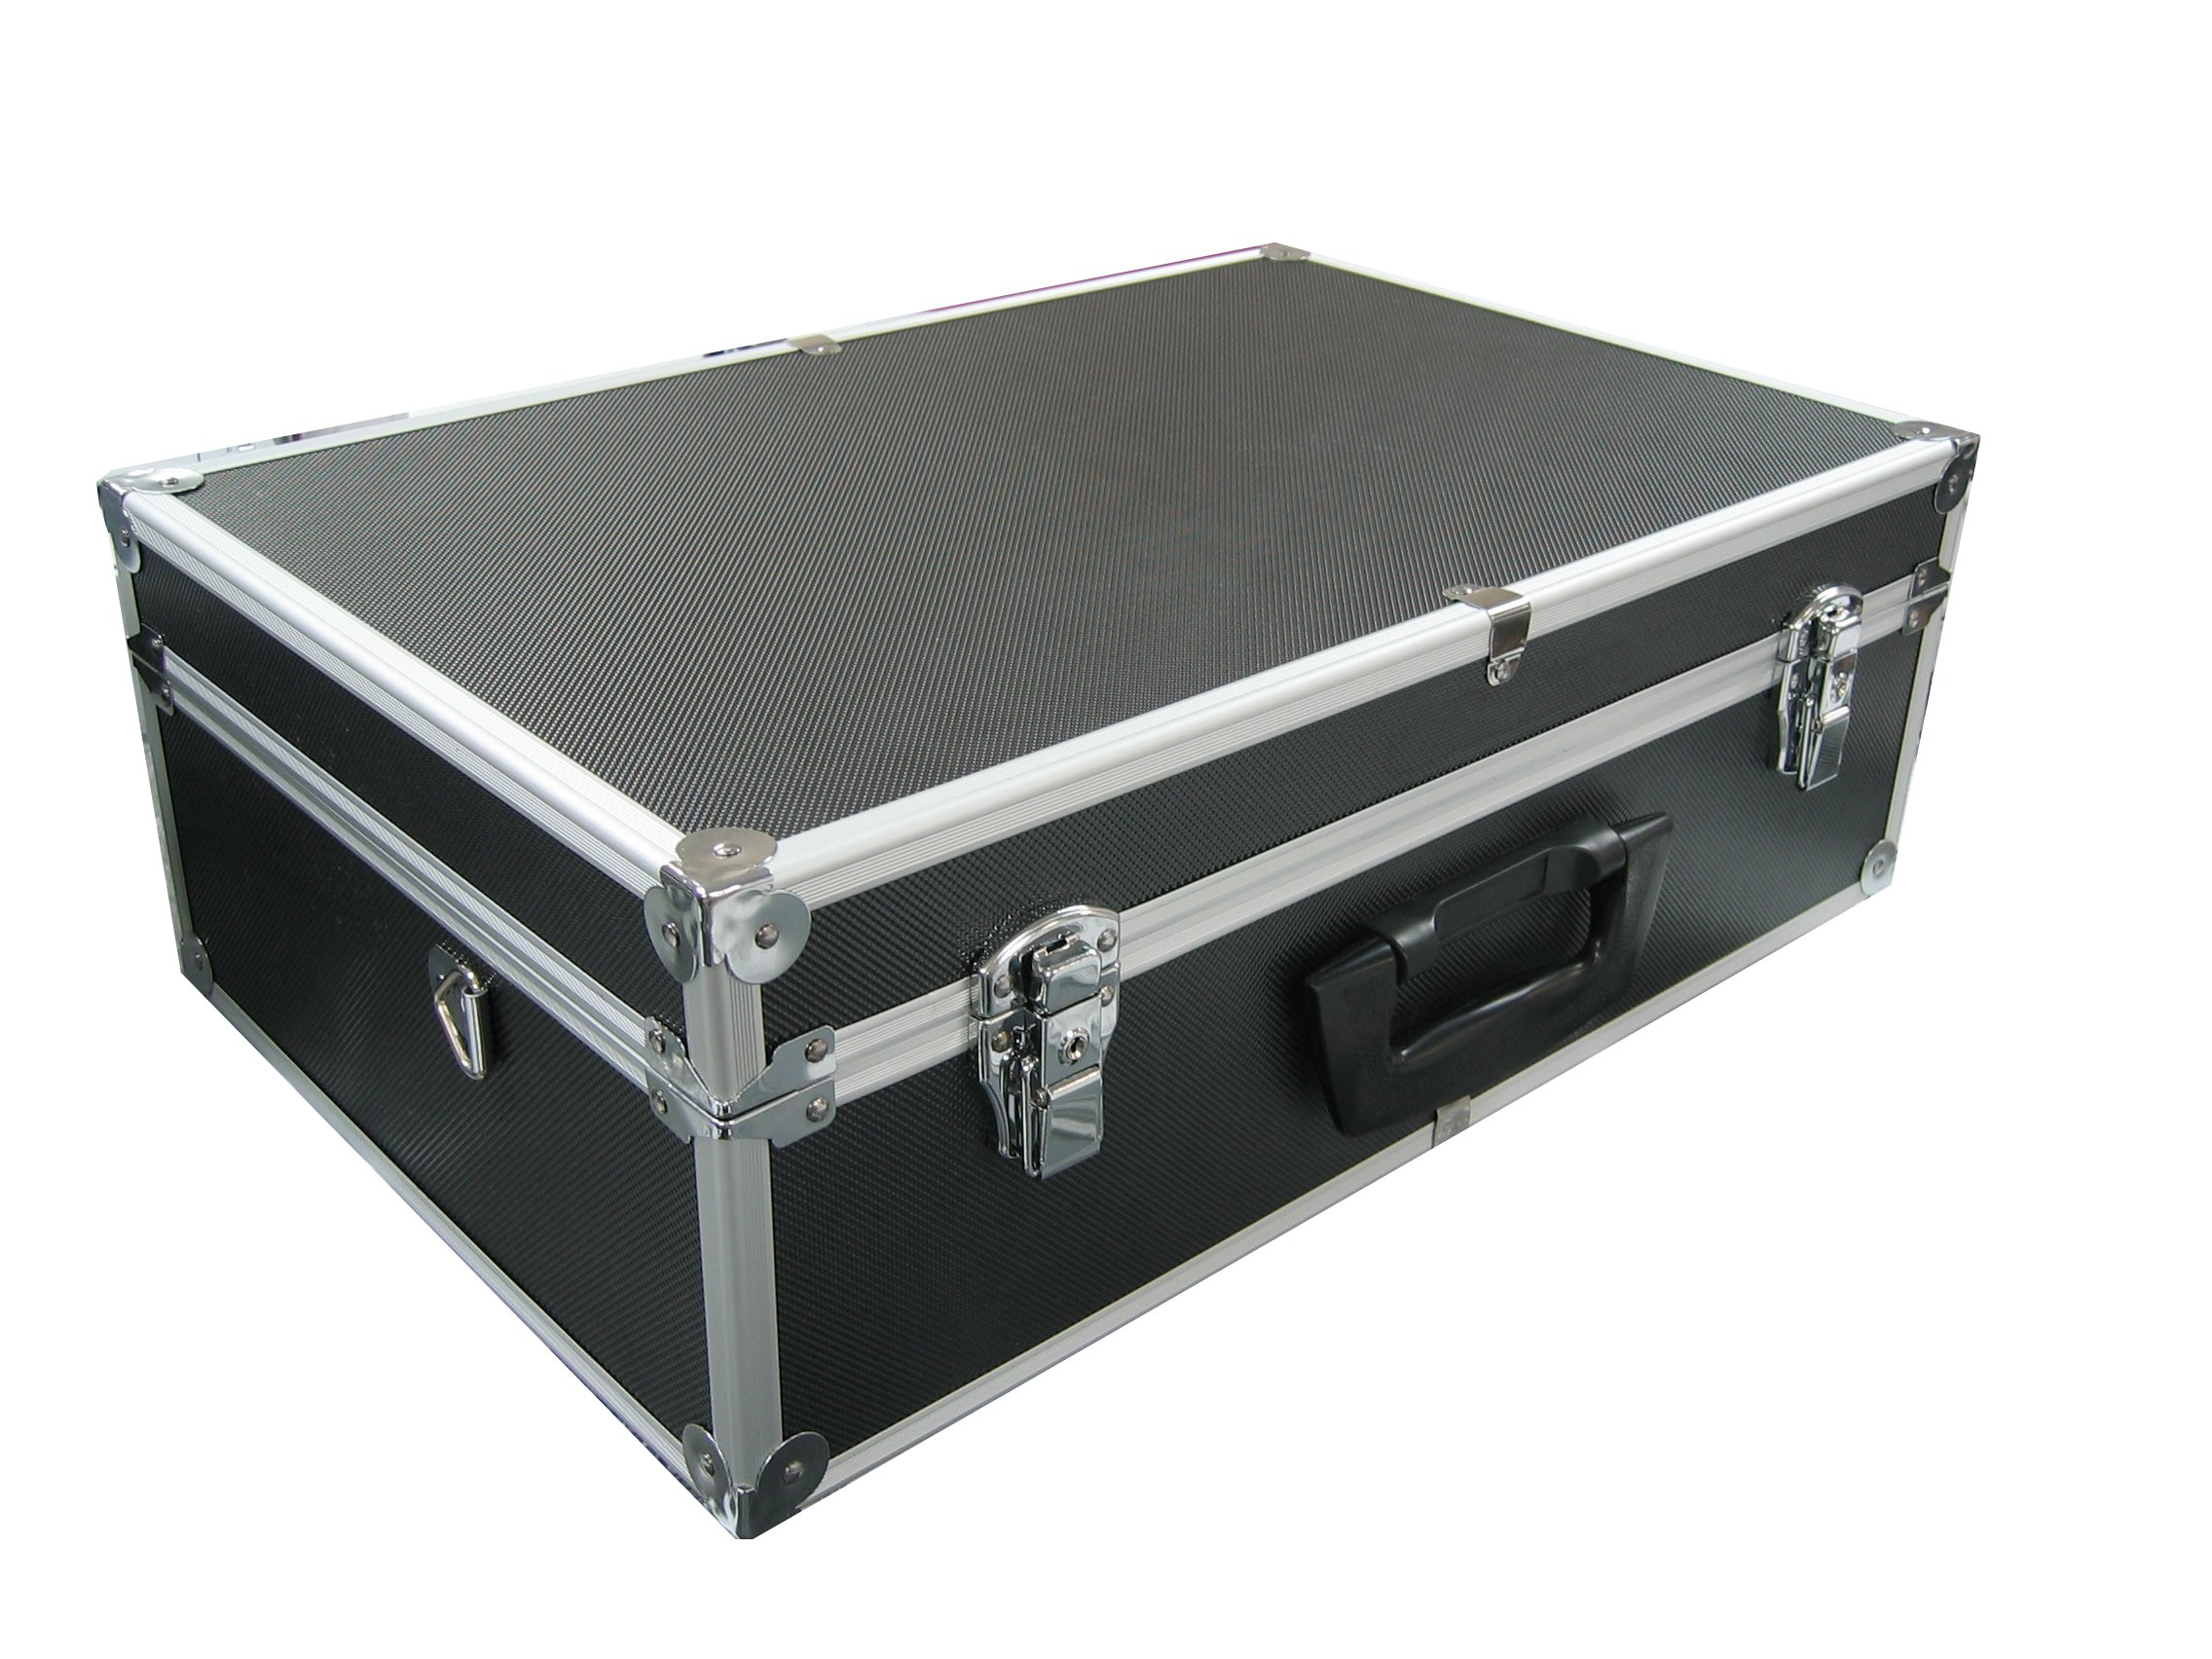 Black Aluminum Multi Purpose Hard Case With Foam For Tool / Camera / Pistool / Hardware and More